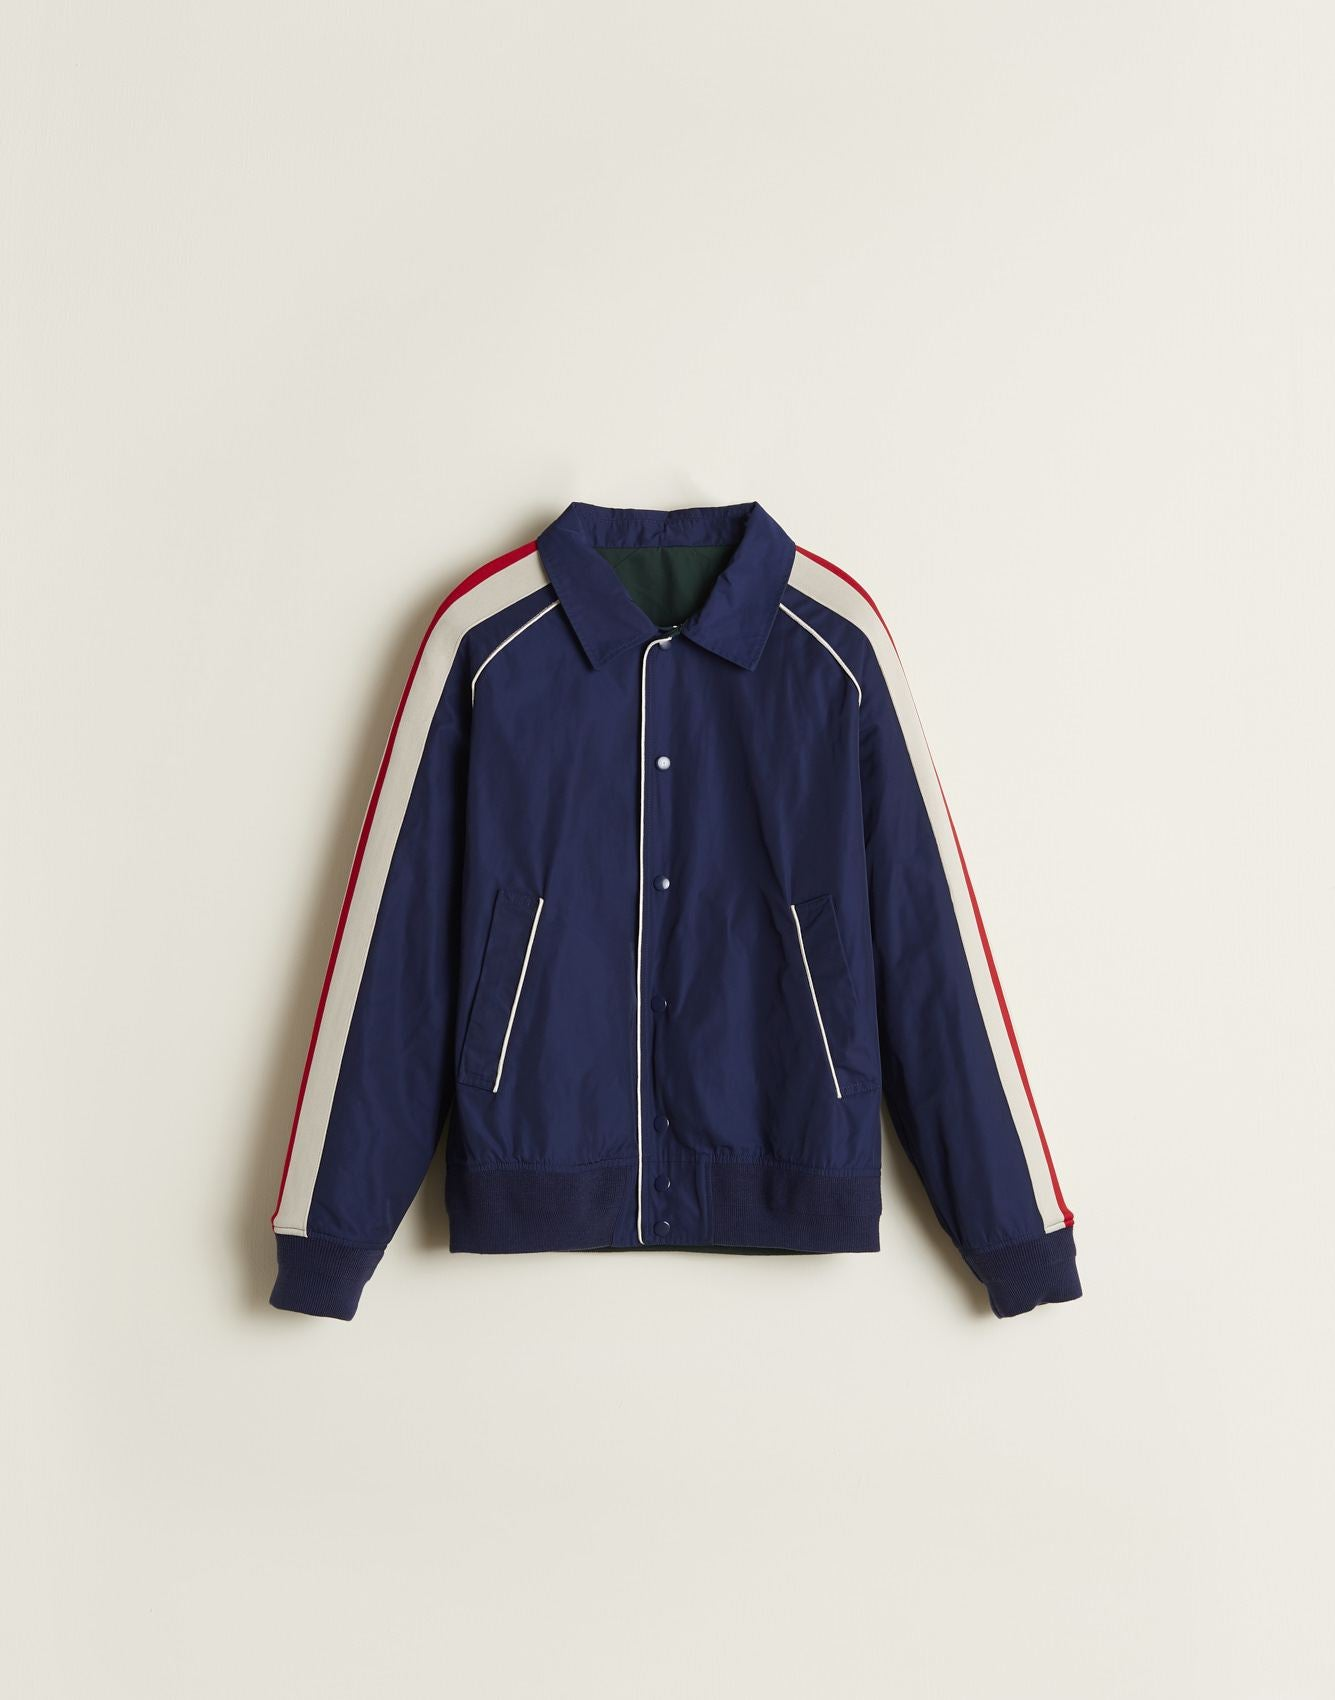 Bellerose jang p1256 navy reversible